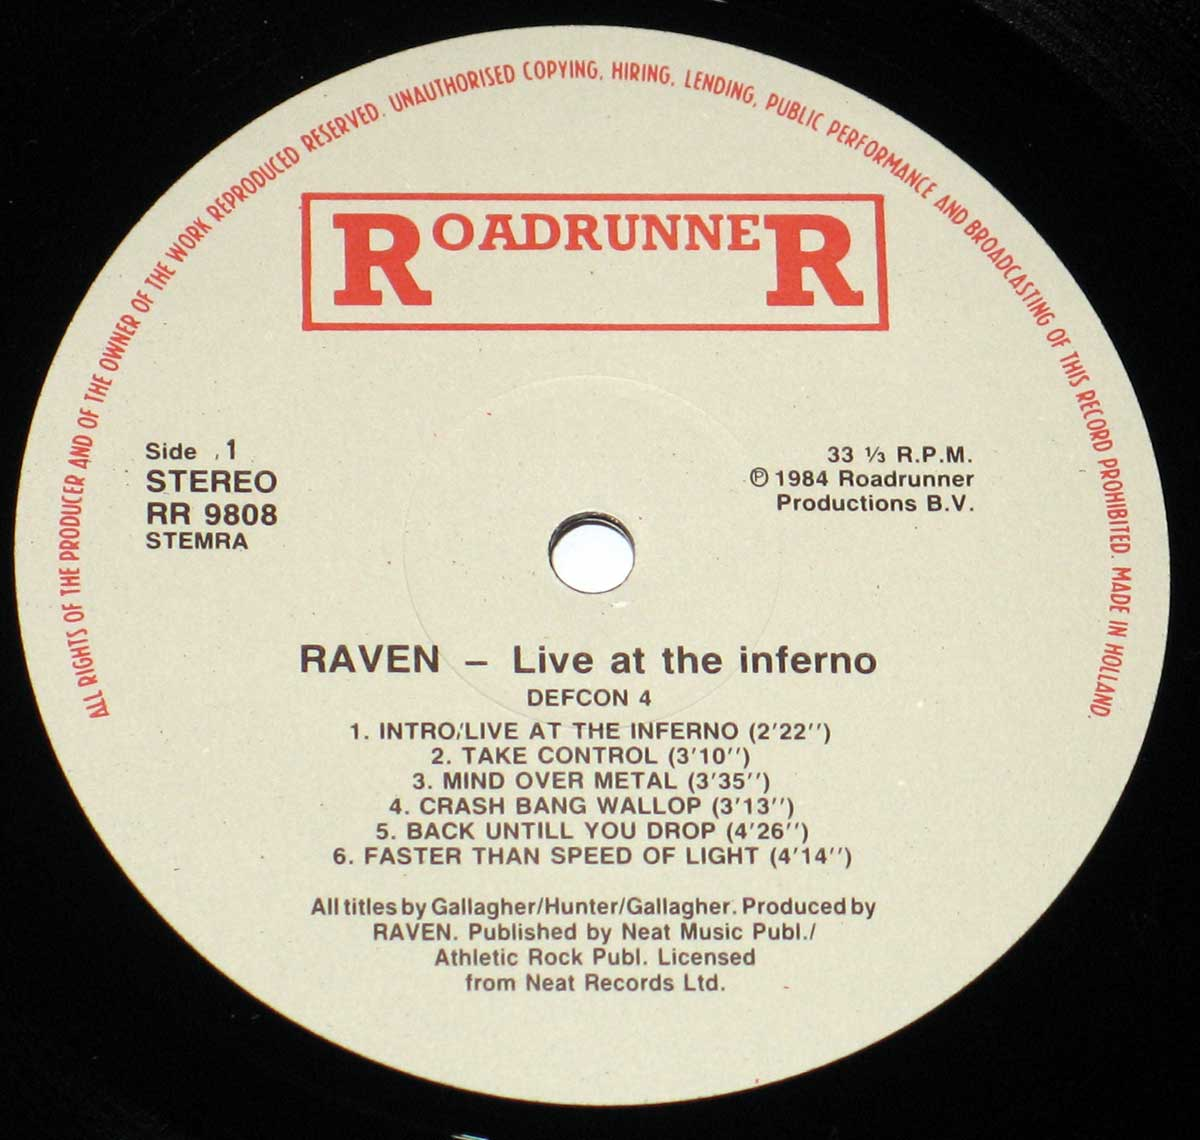 Enlarged High Resolution Photo of the Record's label RAVEN - Live at the Inferno https://vinyl-records.nl